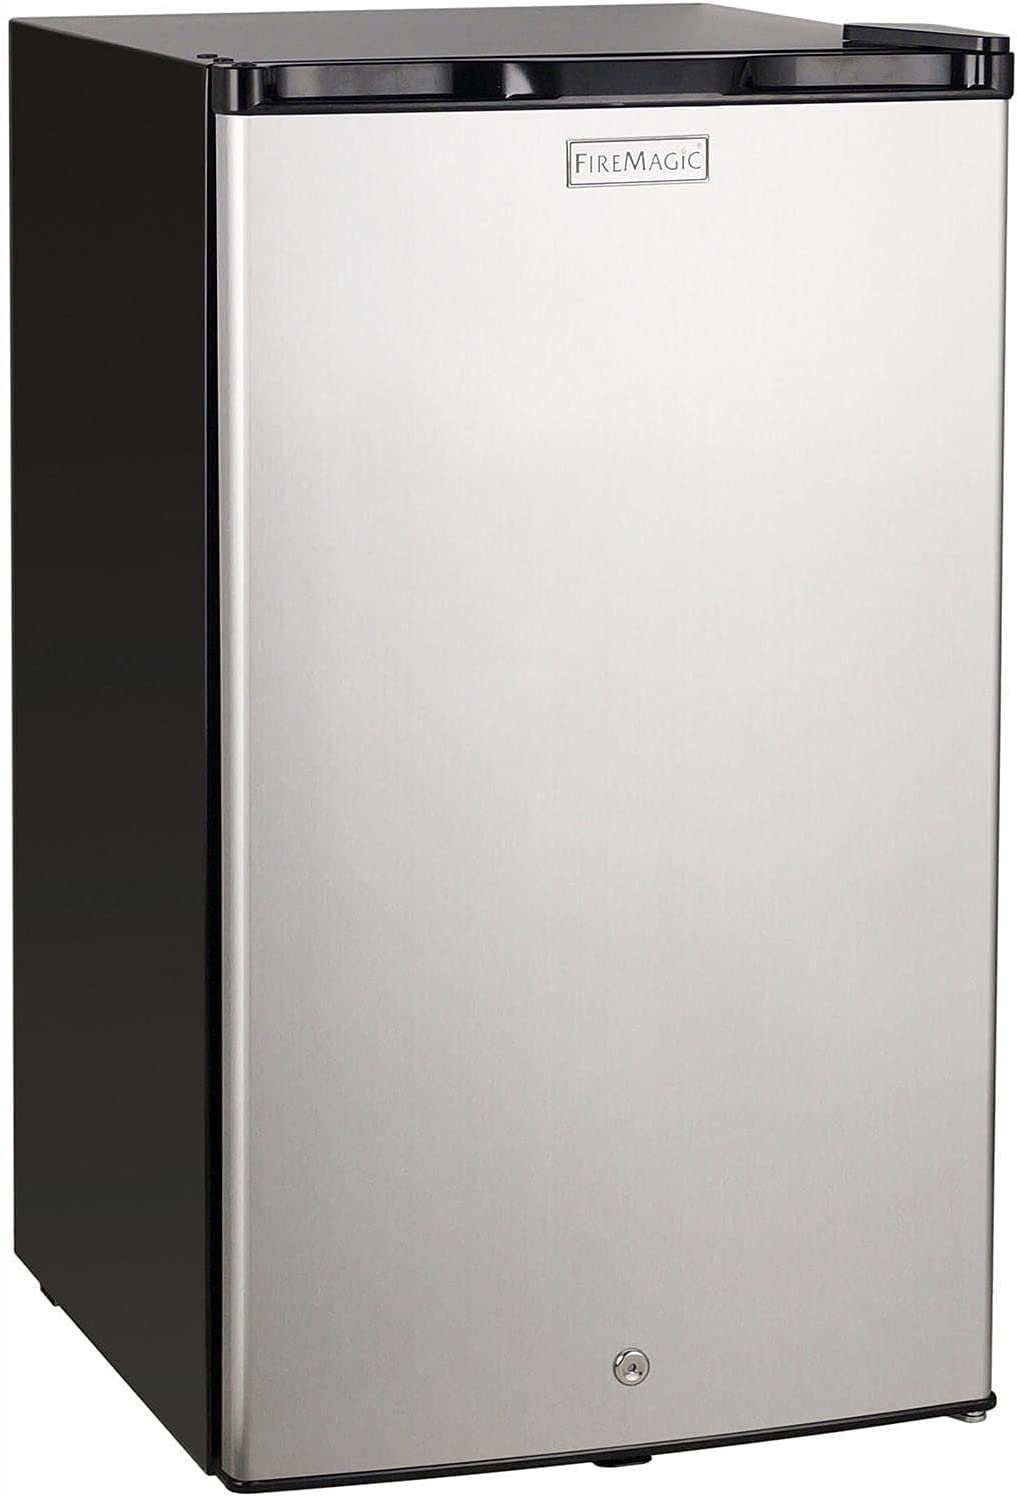 Fire Magic 20-Inch 4.0 Cu. Super special price Stainless Ft. Compact - Regular dealer Refrigerator